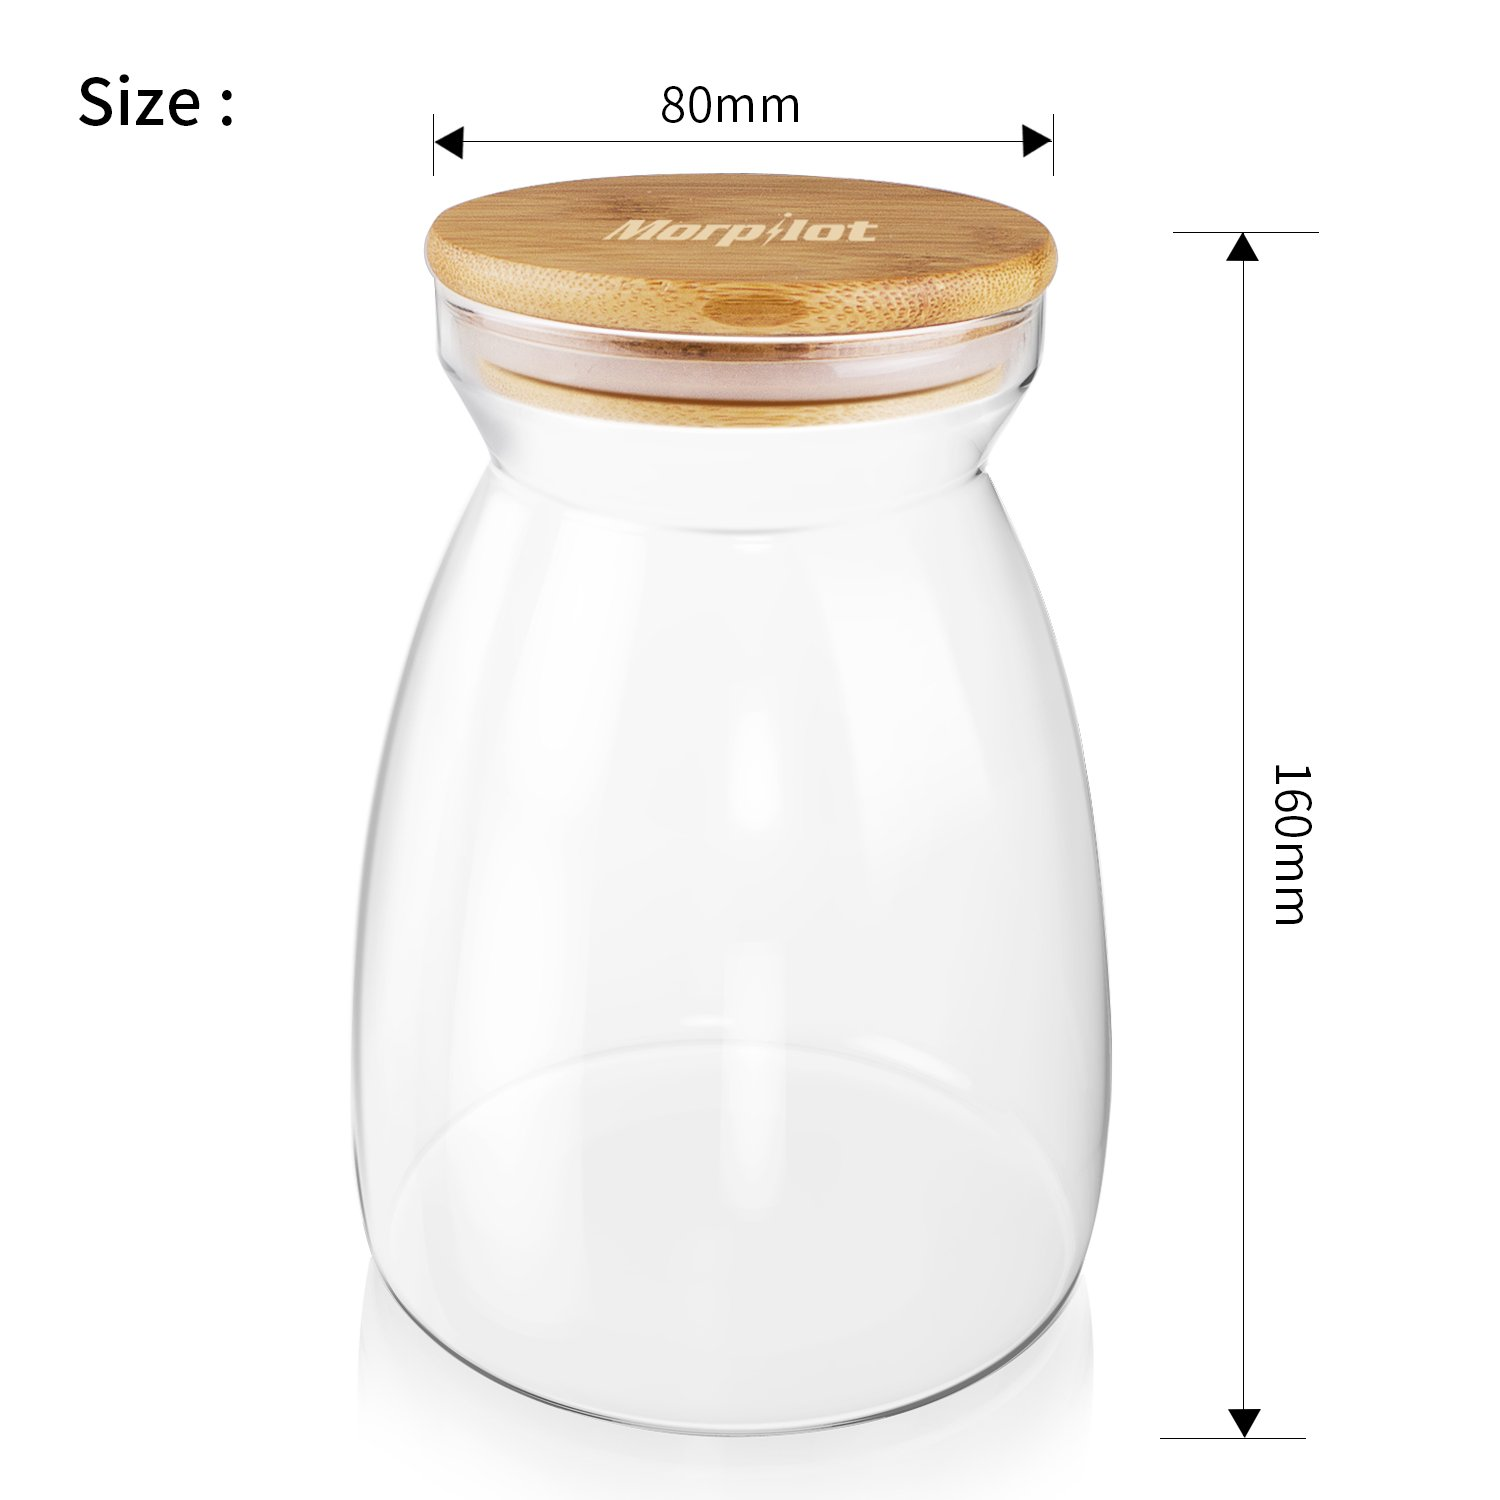 Morpilot Glass Storage Jars 1100ml for Tea Coffee Sugar Biscuit Storage,Clear Glass Food Storage Jar with Silicone Seal Ring Bamboo Lid by Morpilot (Image #3)